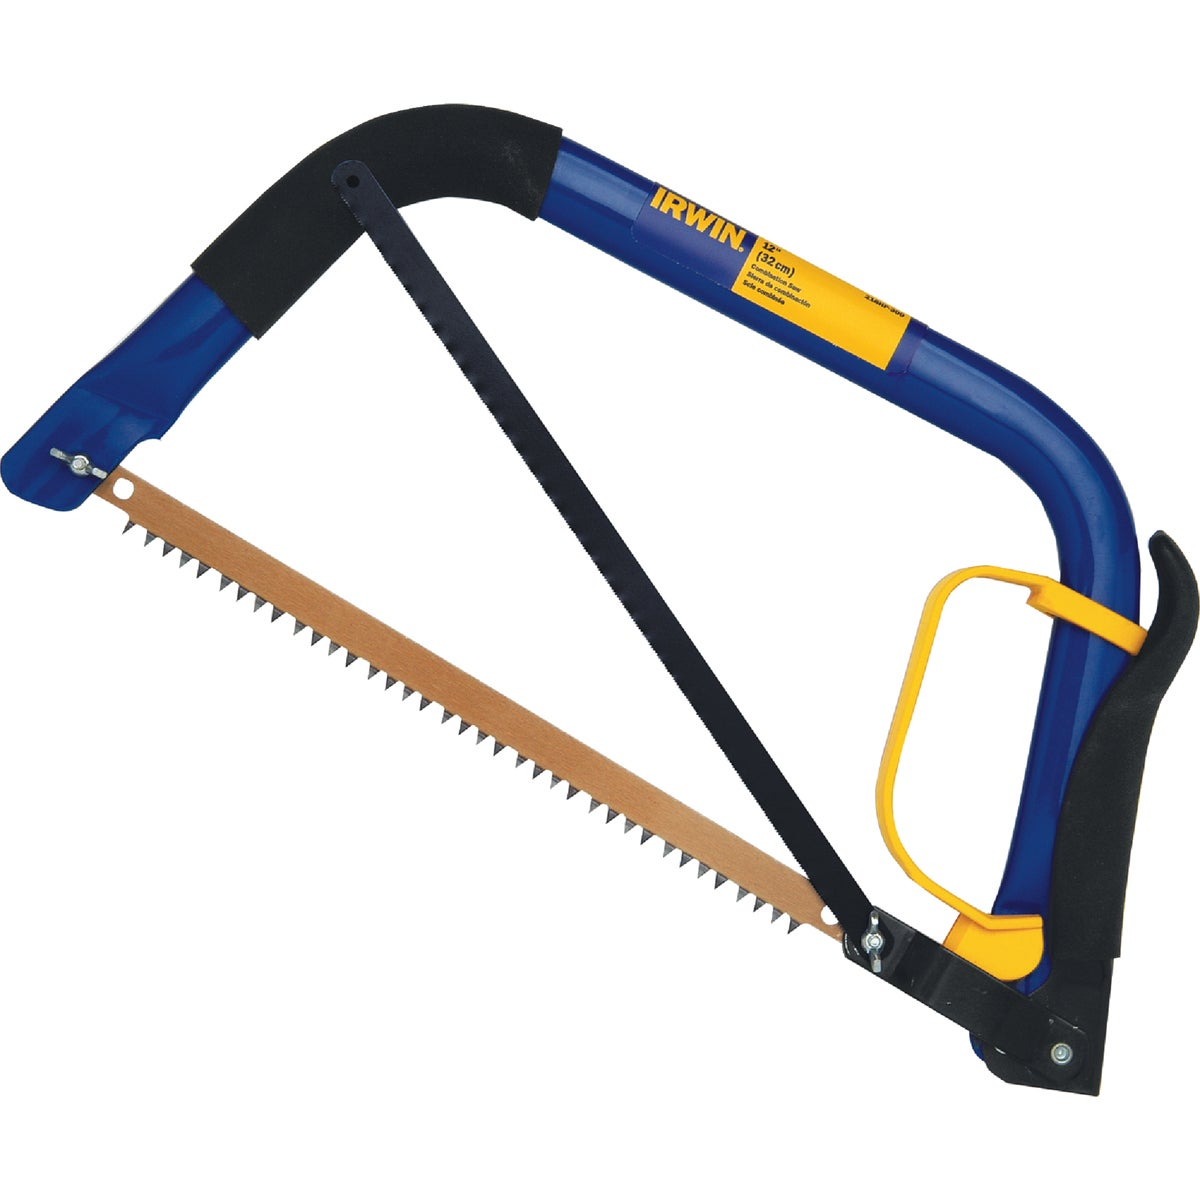 "12"" BOW/HACKSAW - 218HP-300 by Irwin Industr Tool"